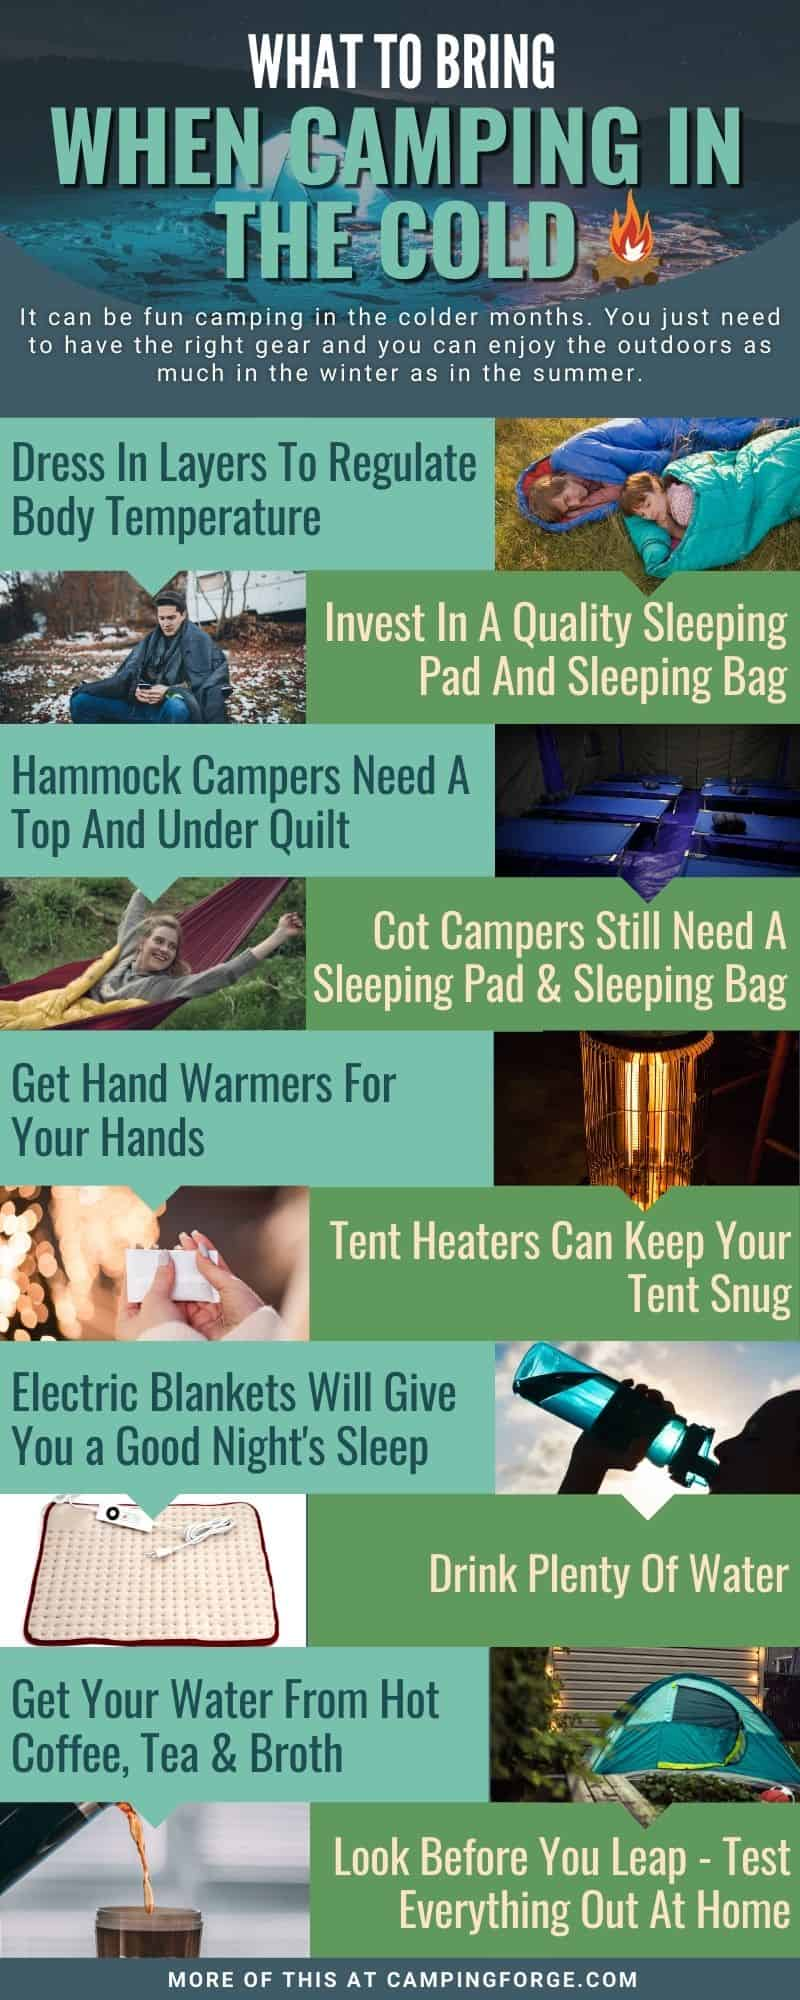 Infographic on how to camp in the cold